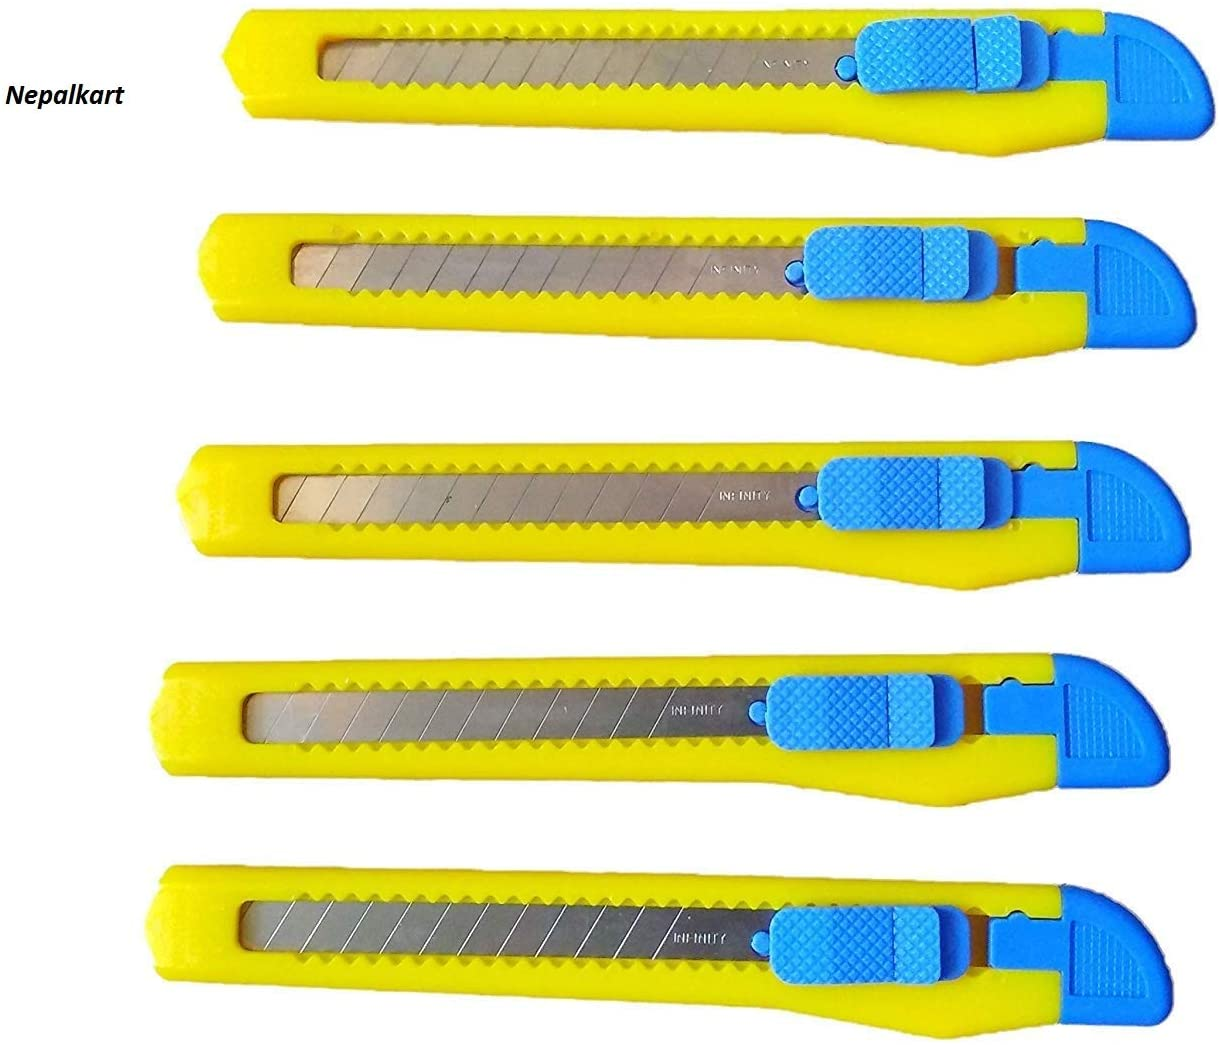 Nepalkart 20 Knife Set, Cutters Openers Utility Knives with Snap Off Blades Knife Retractable Stainless Steel Blade Cutter Knife for Cutter 9 mm Yellow